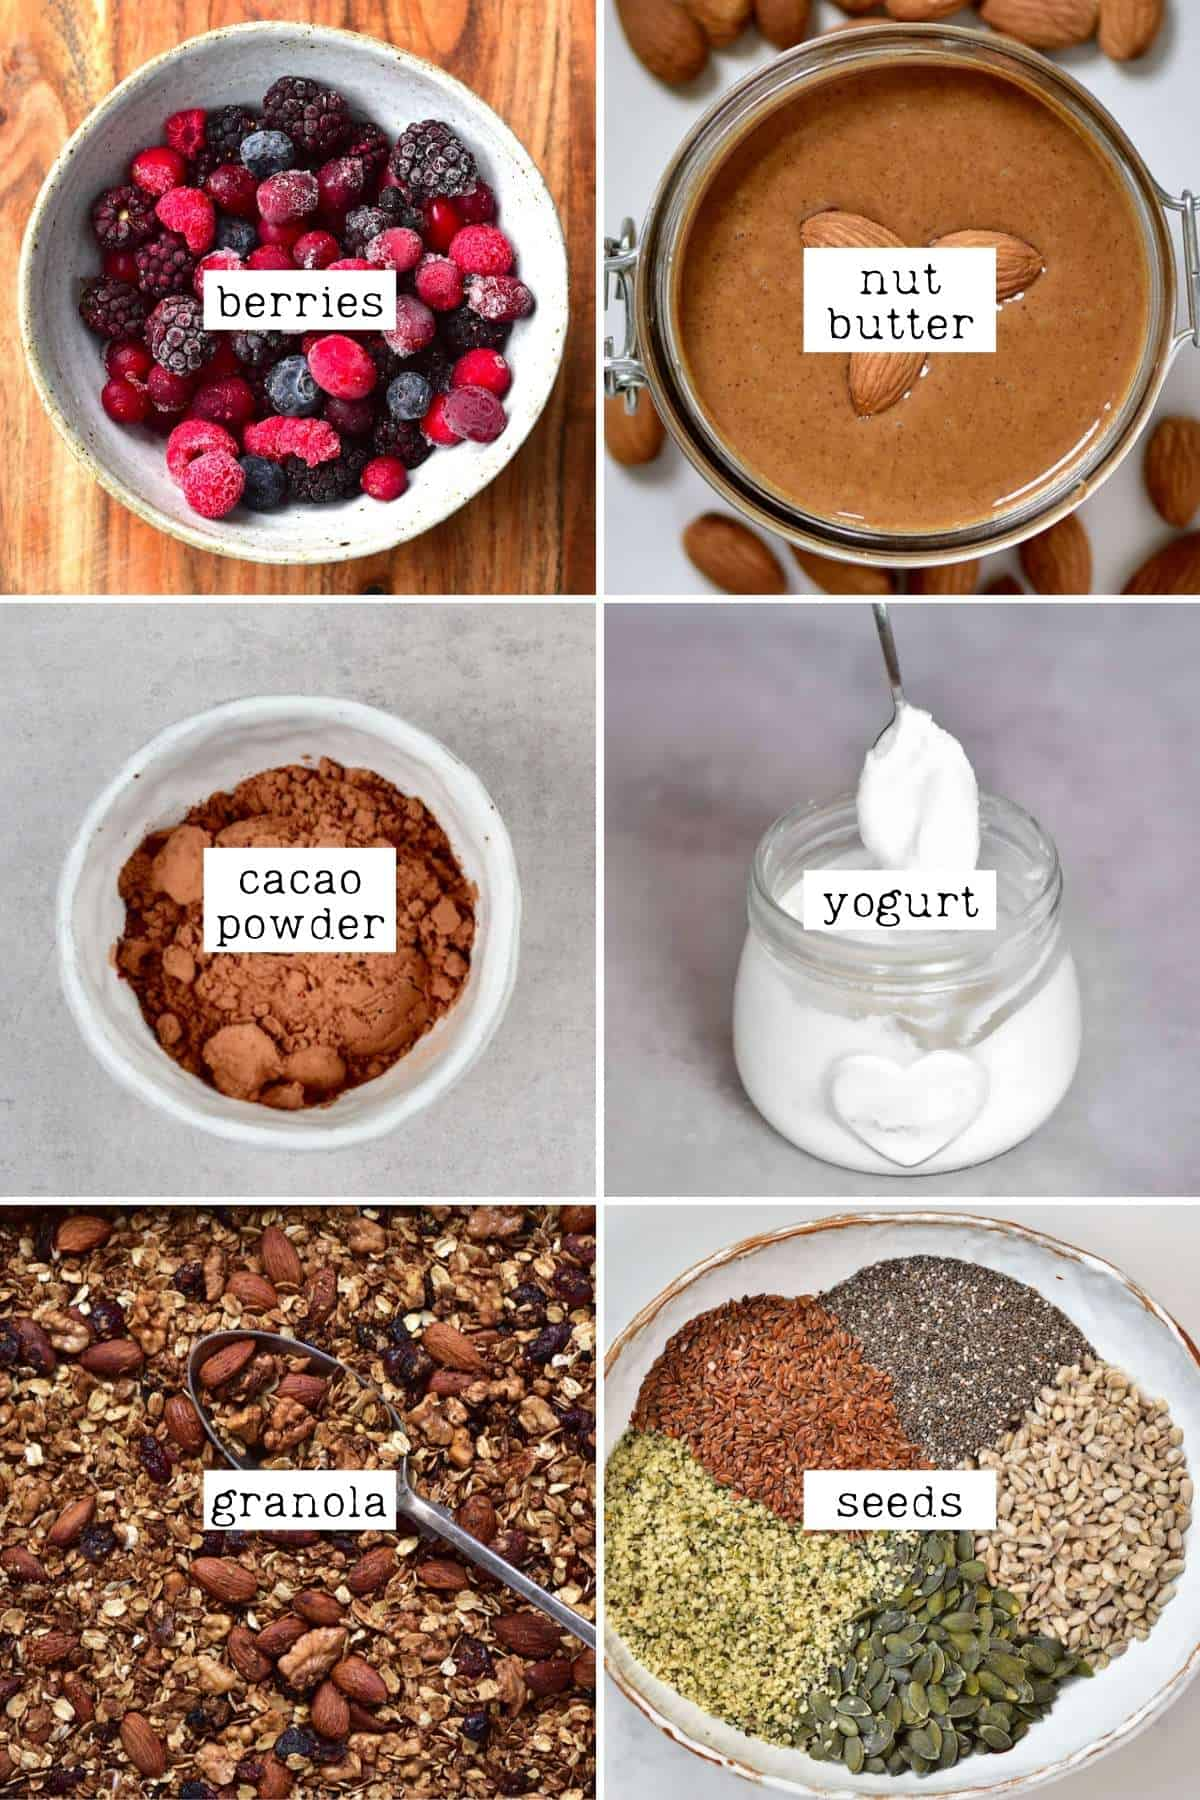 Optional toppings for smoothies